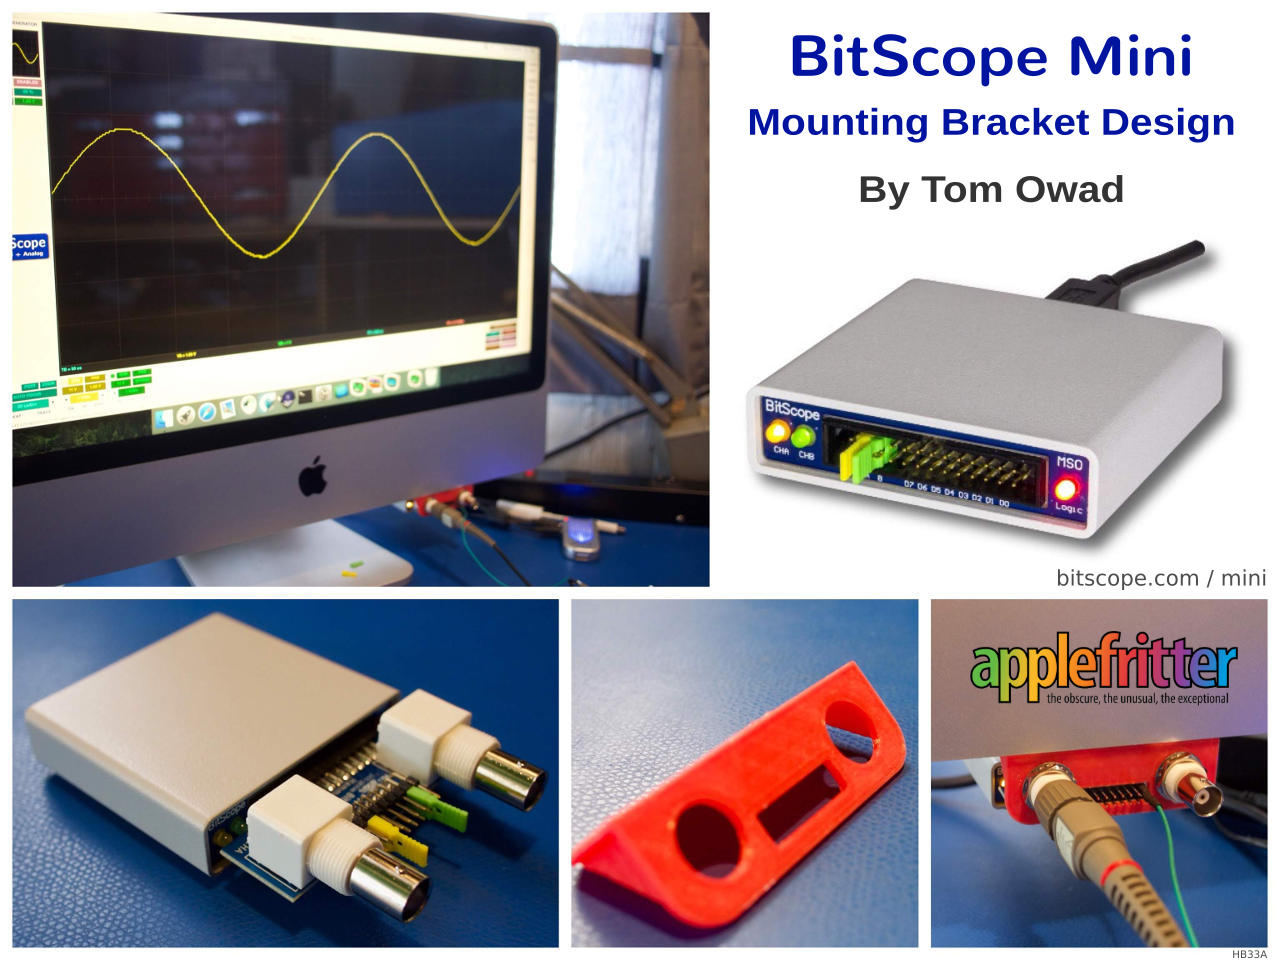 BitScope iMac Mini Test and Measurement Workstation